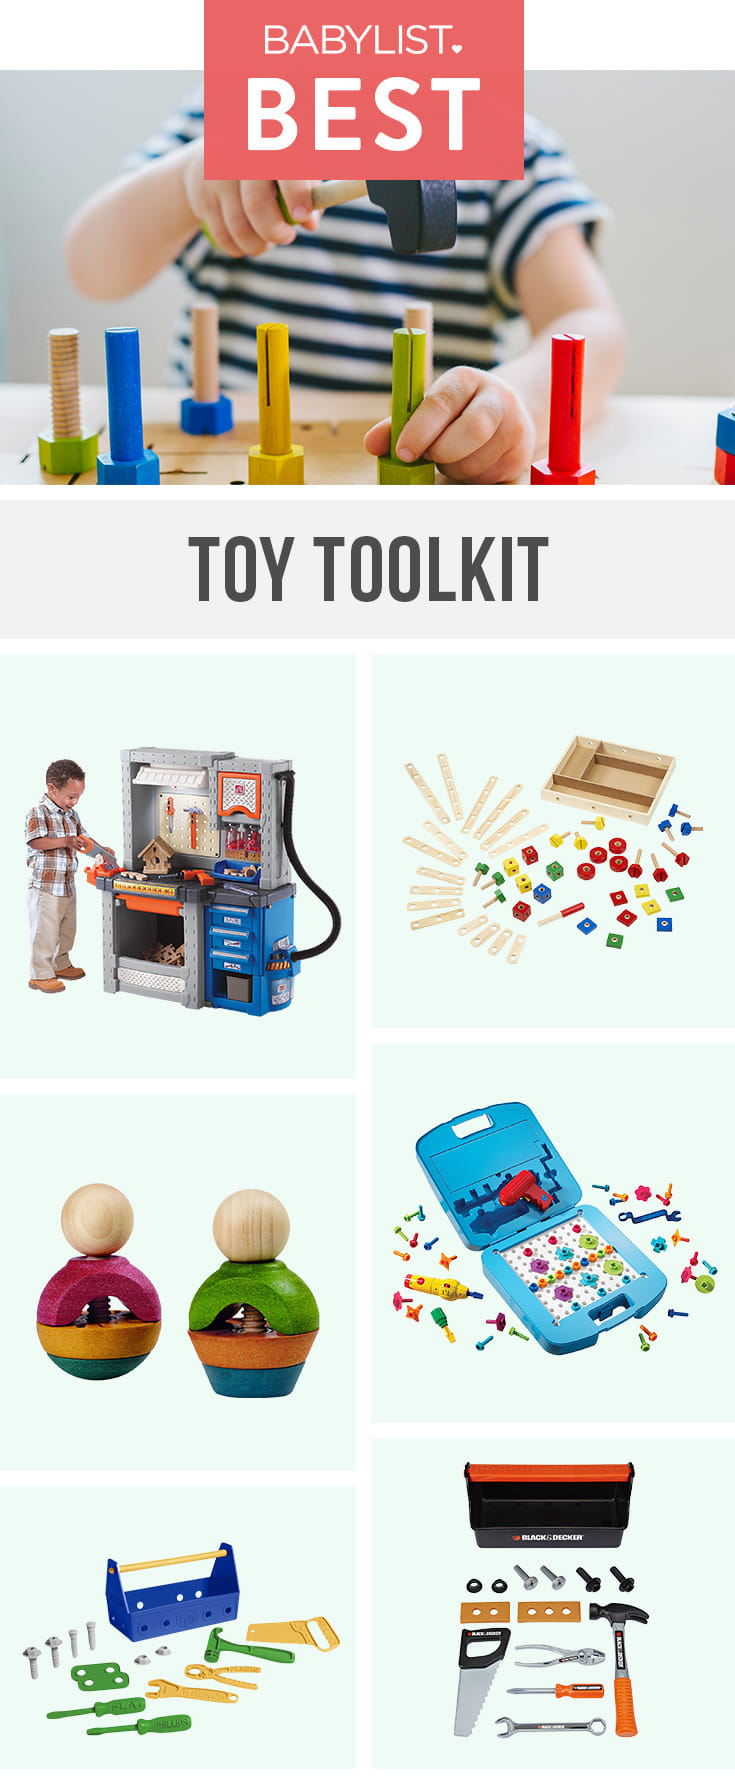 Give your kiddo the tools (literally) to build hand-eye coordination and motor skills, and give them a jumpstart on being able to help you fix stuff around the house.